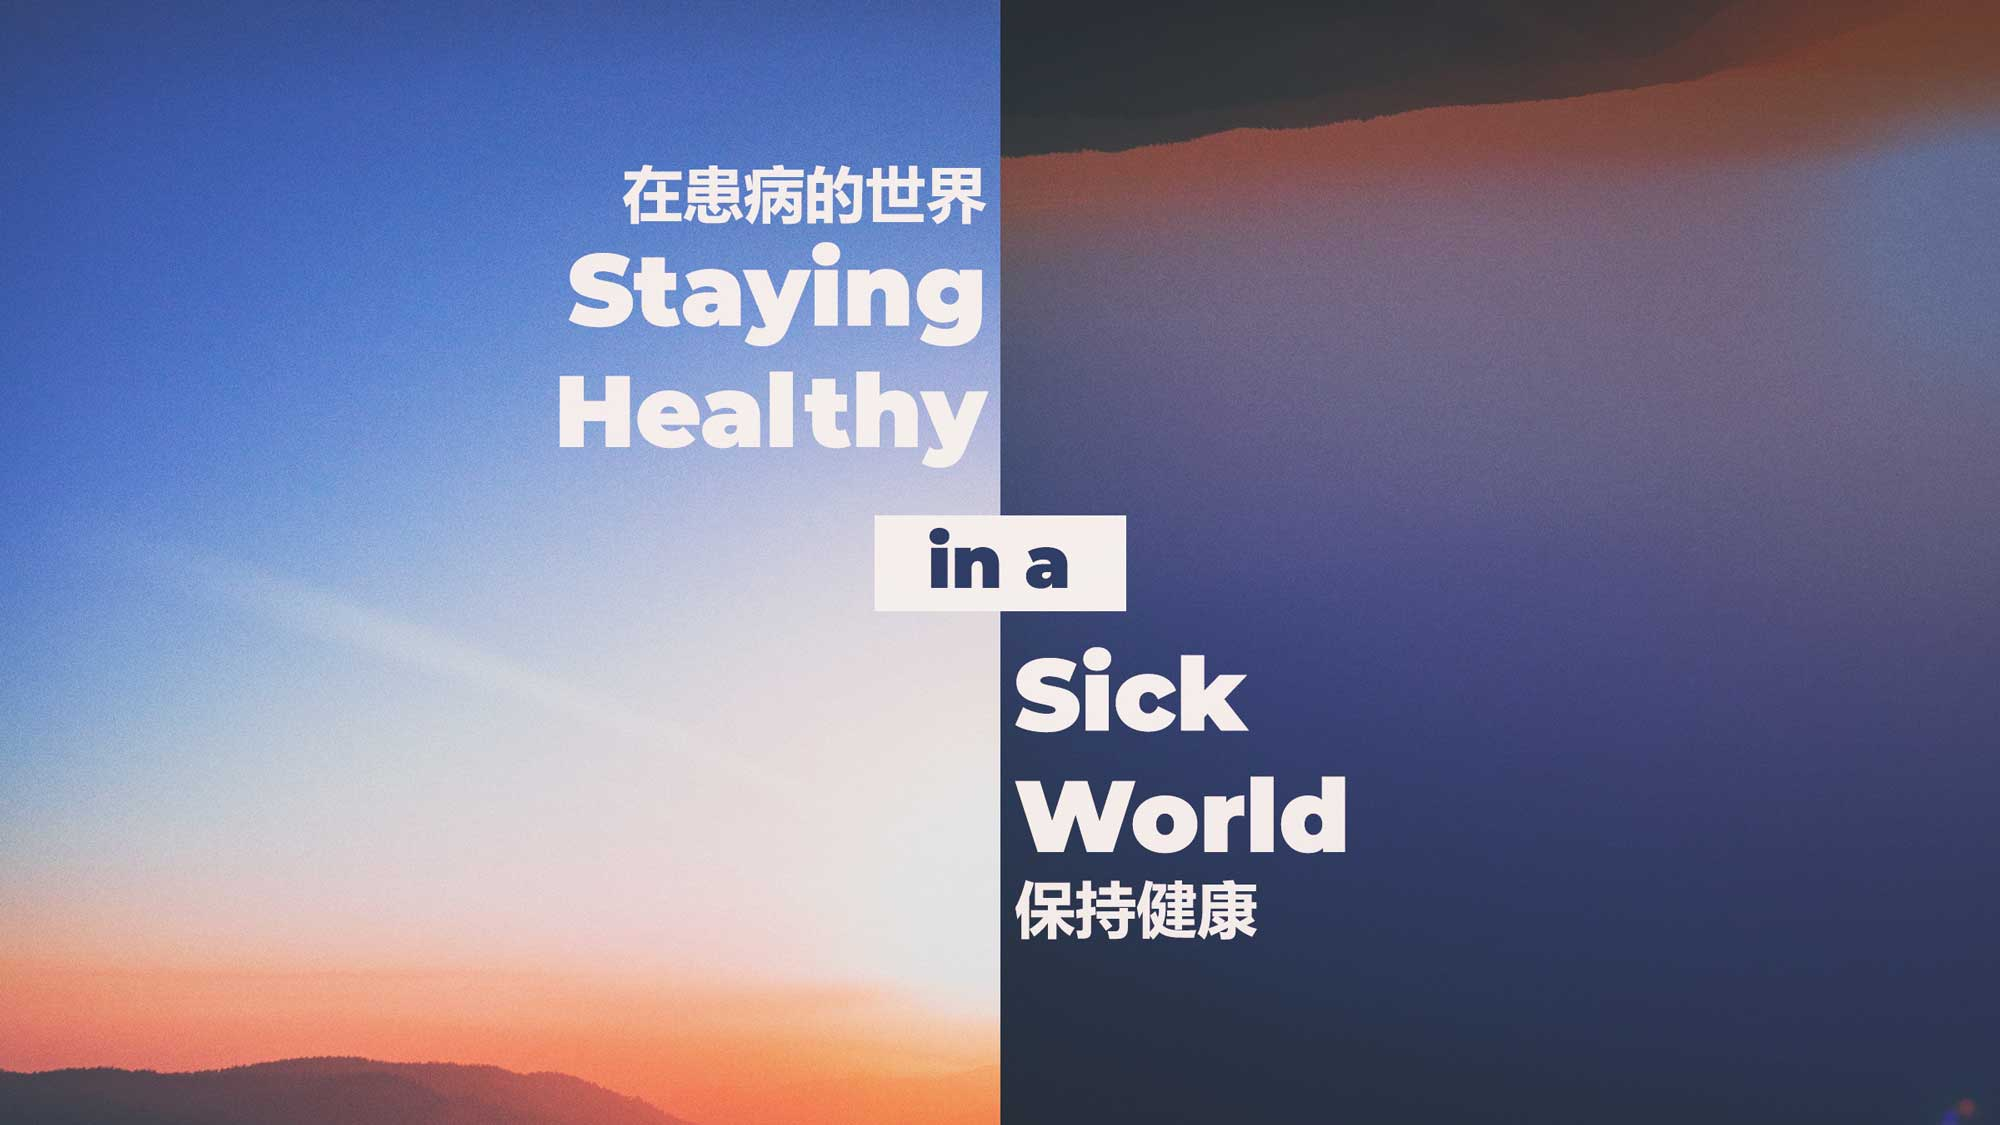 Staying-Healthy-in-a-Sick-World---Title-small